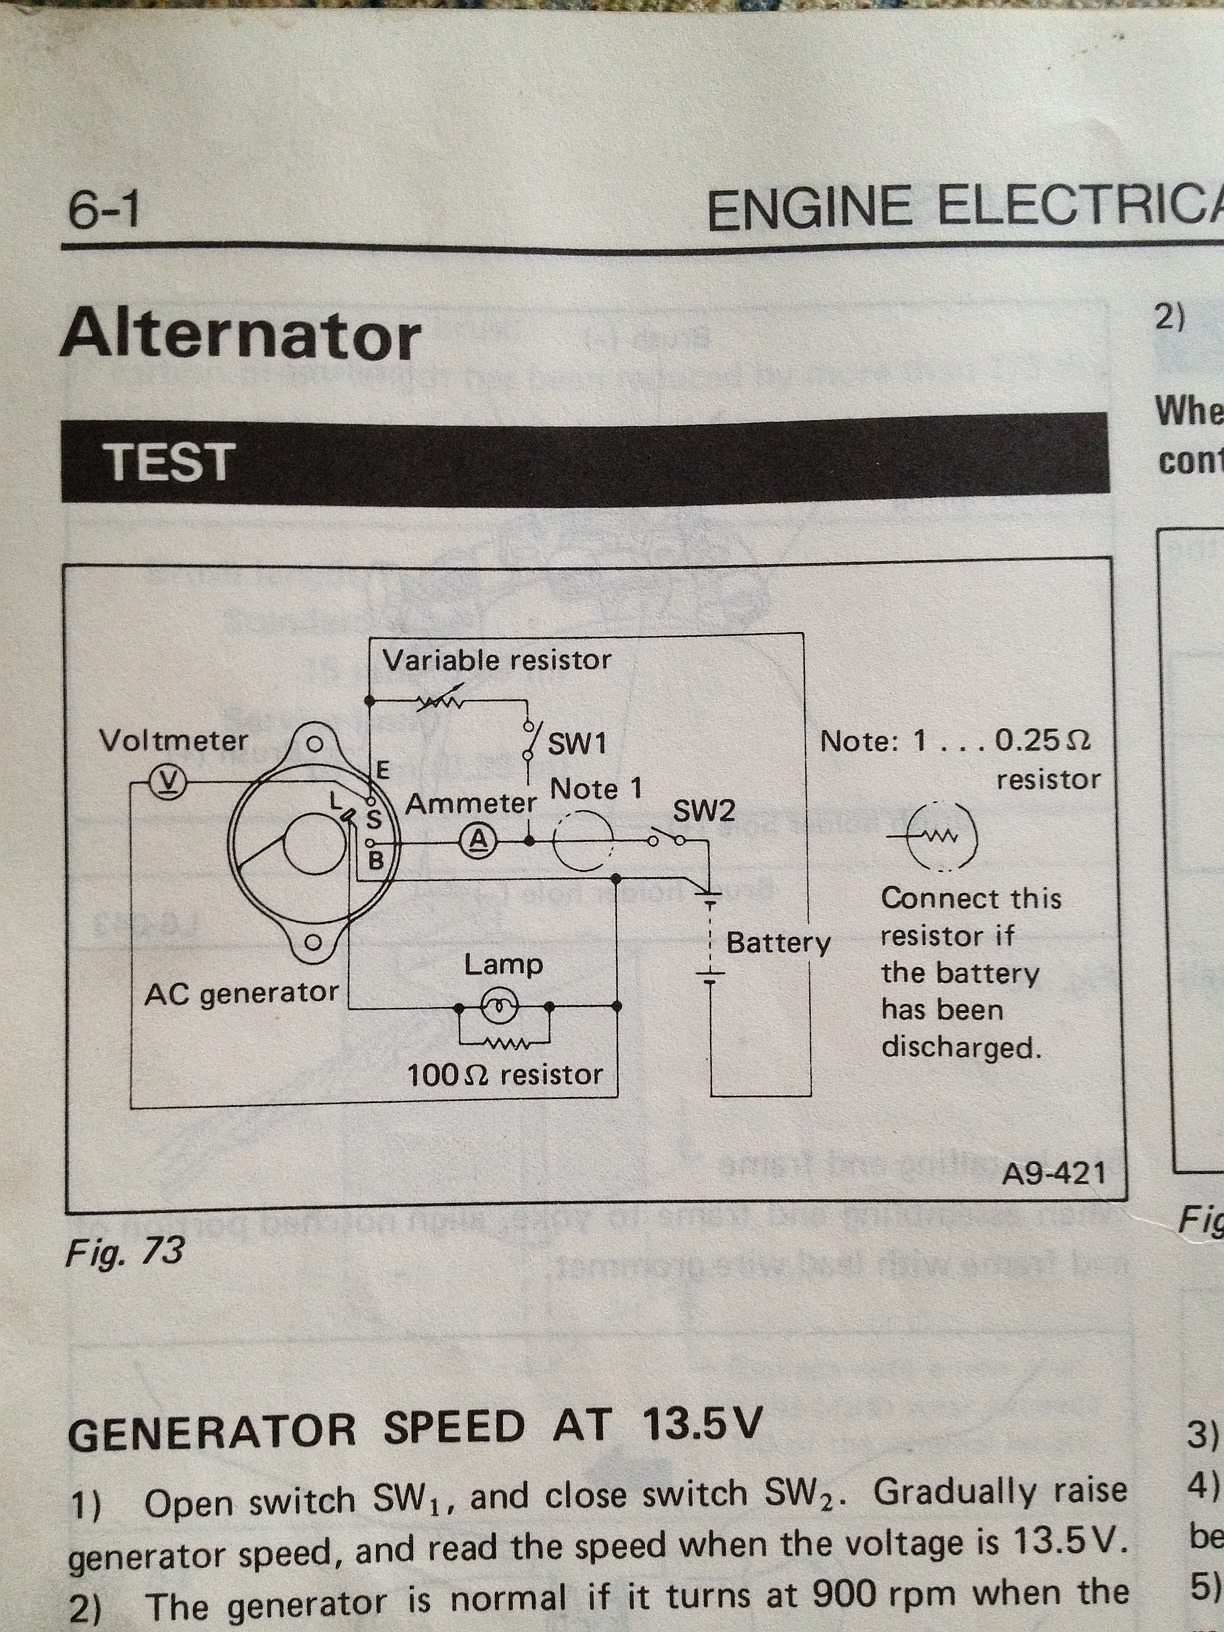 1985 Subaru Gl Wagon Alternator Wiring Diagram Old Gen 80s Gc8 Altwire